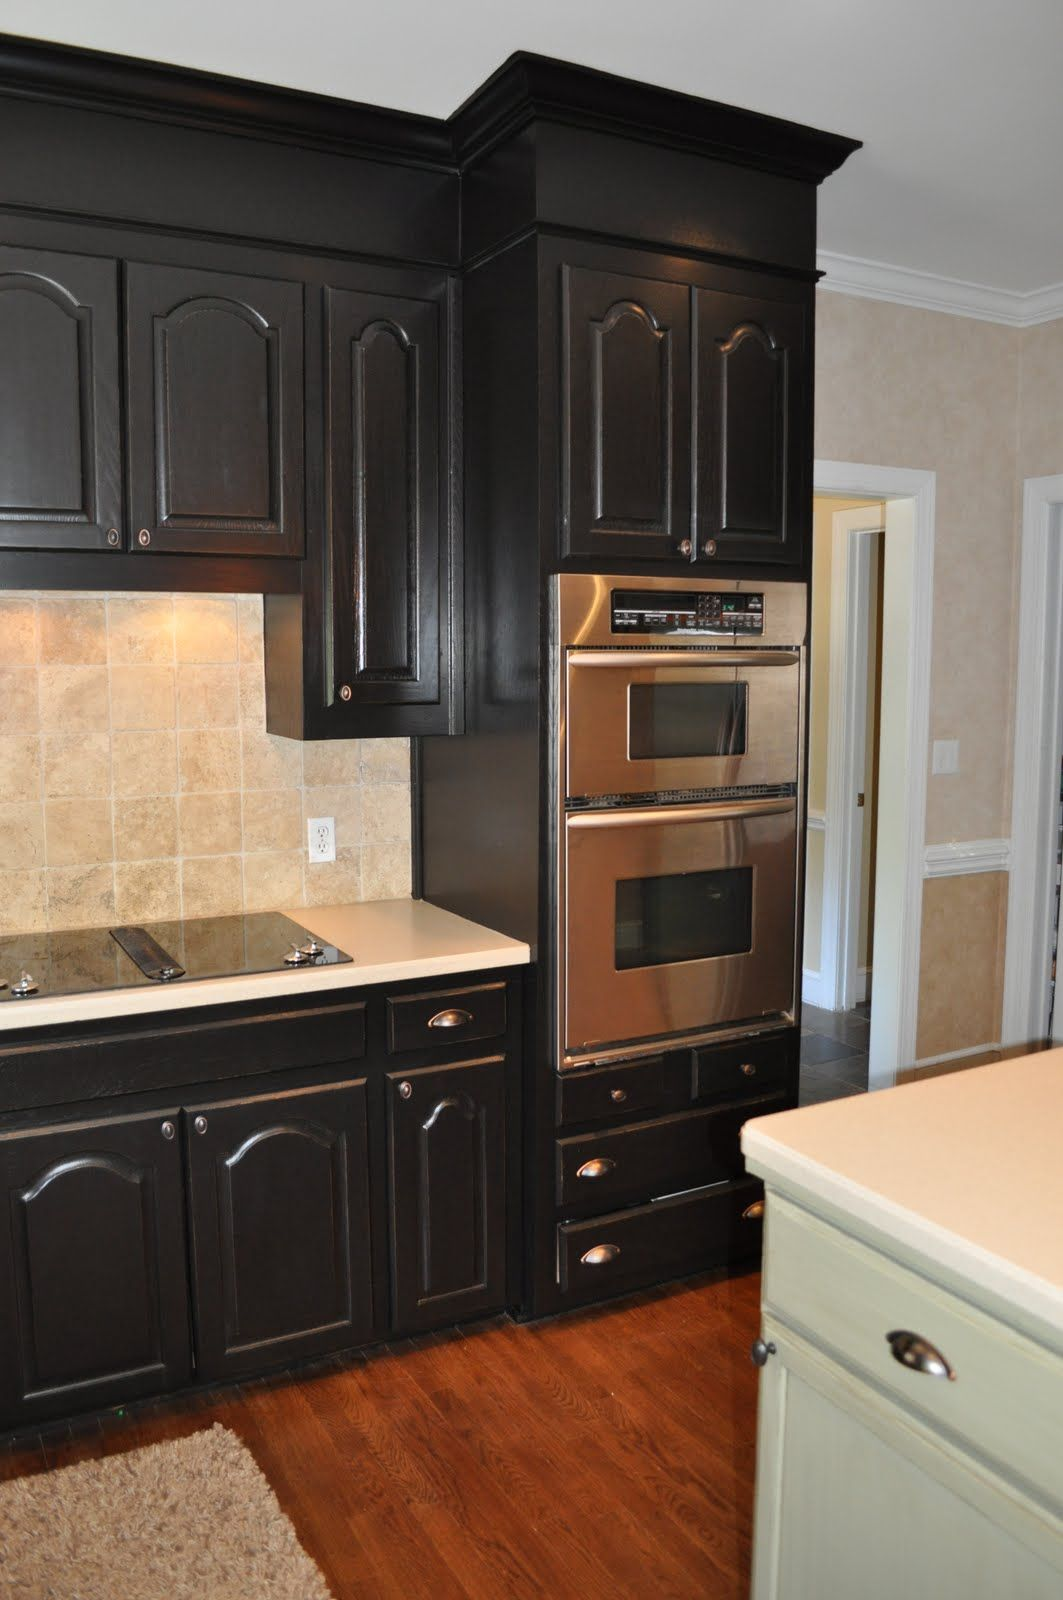 Great transition from black cupboards to wood floors to white trim